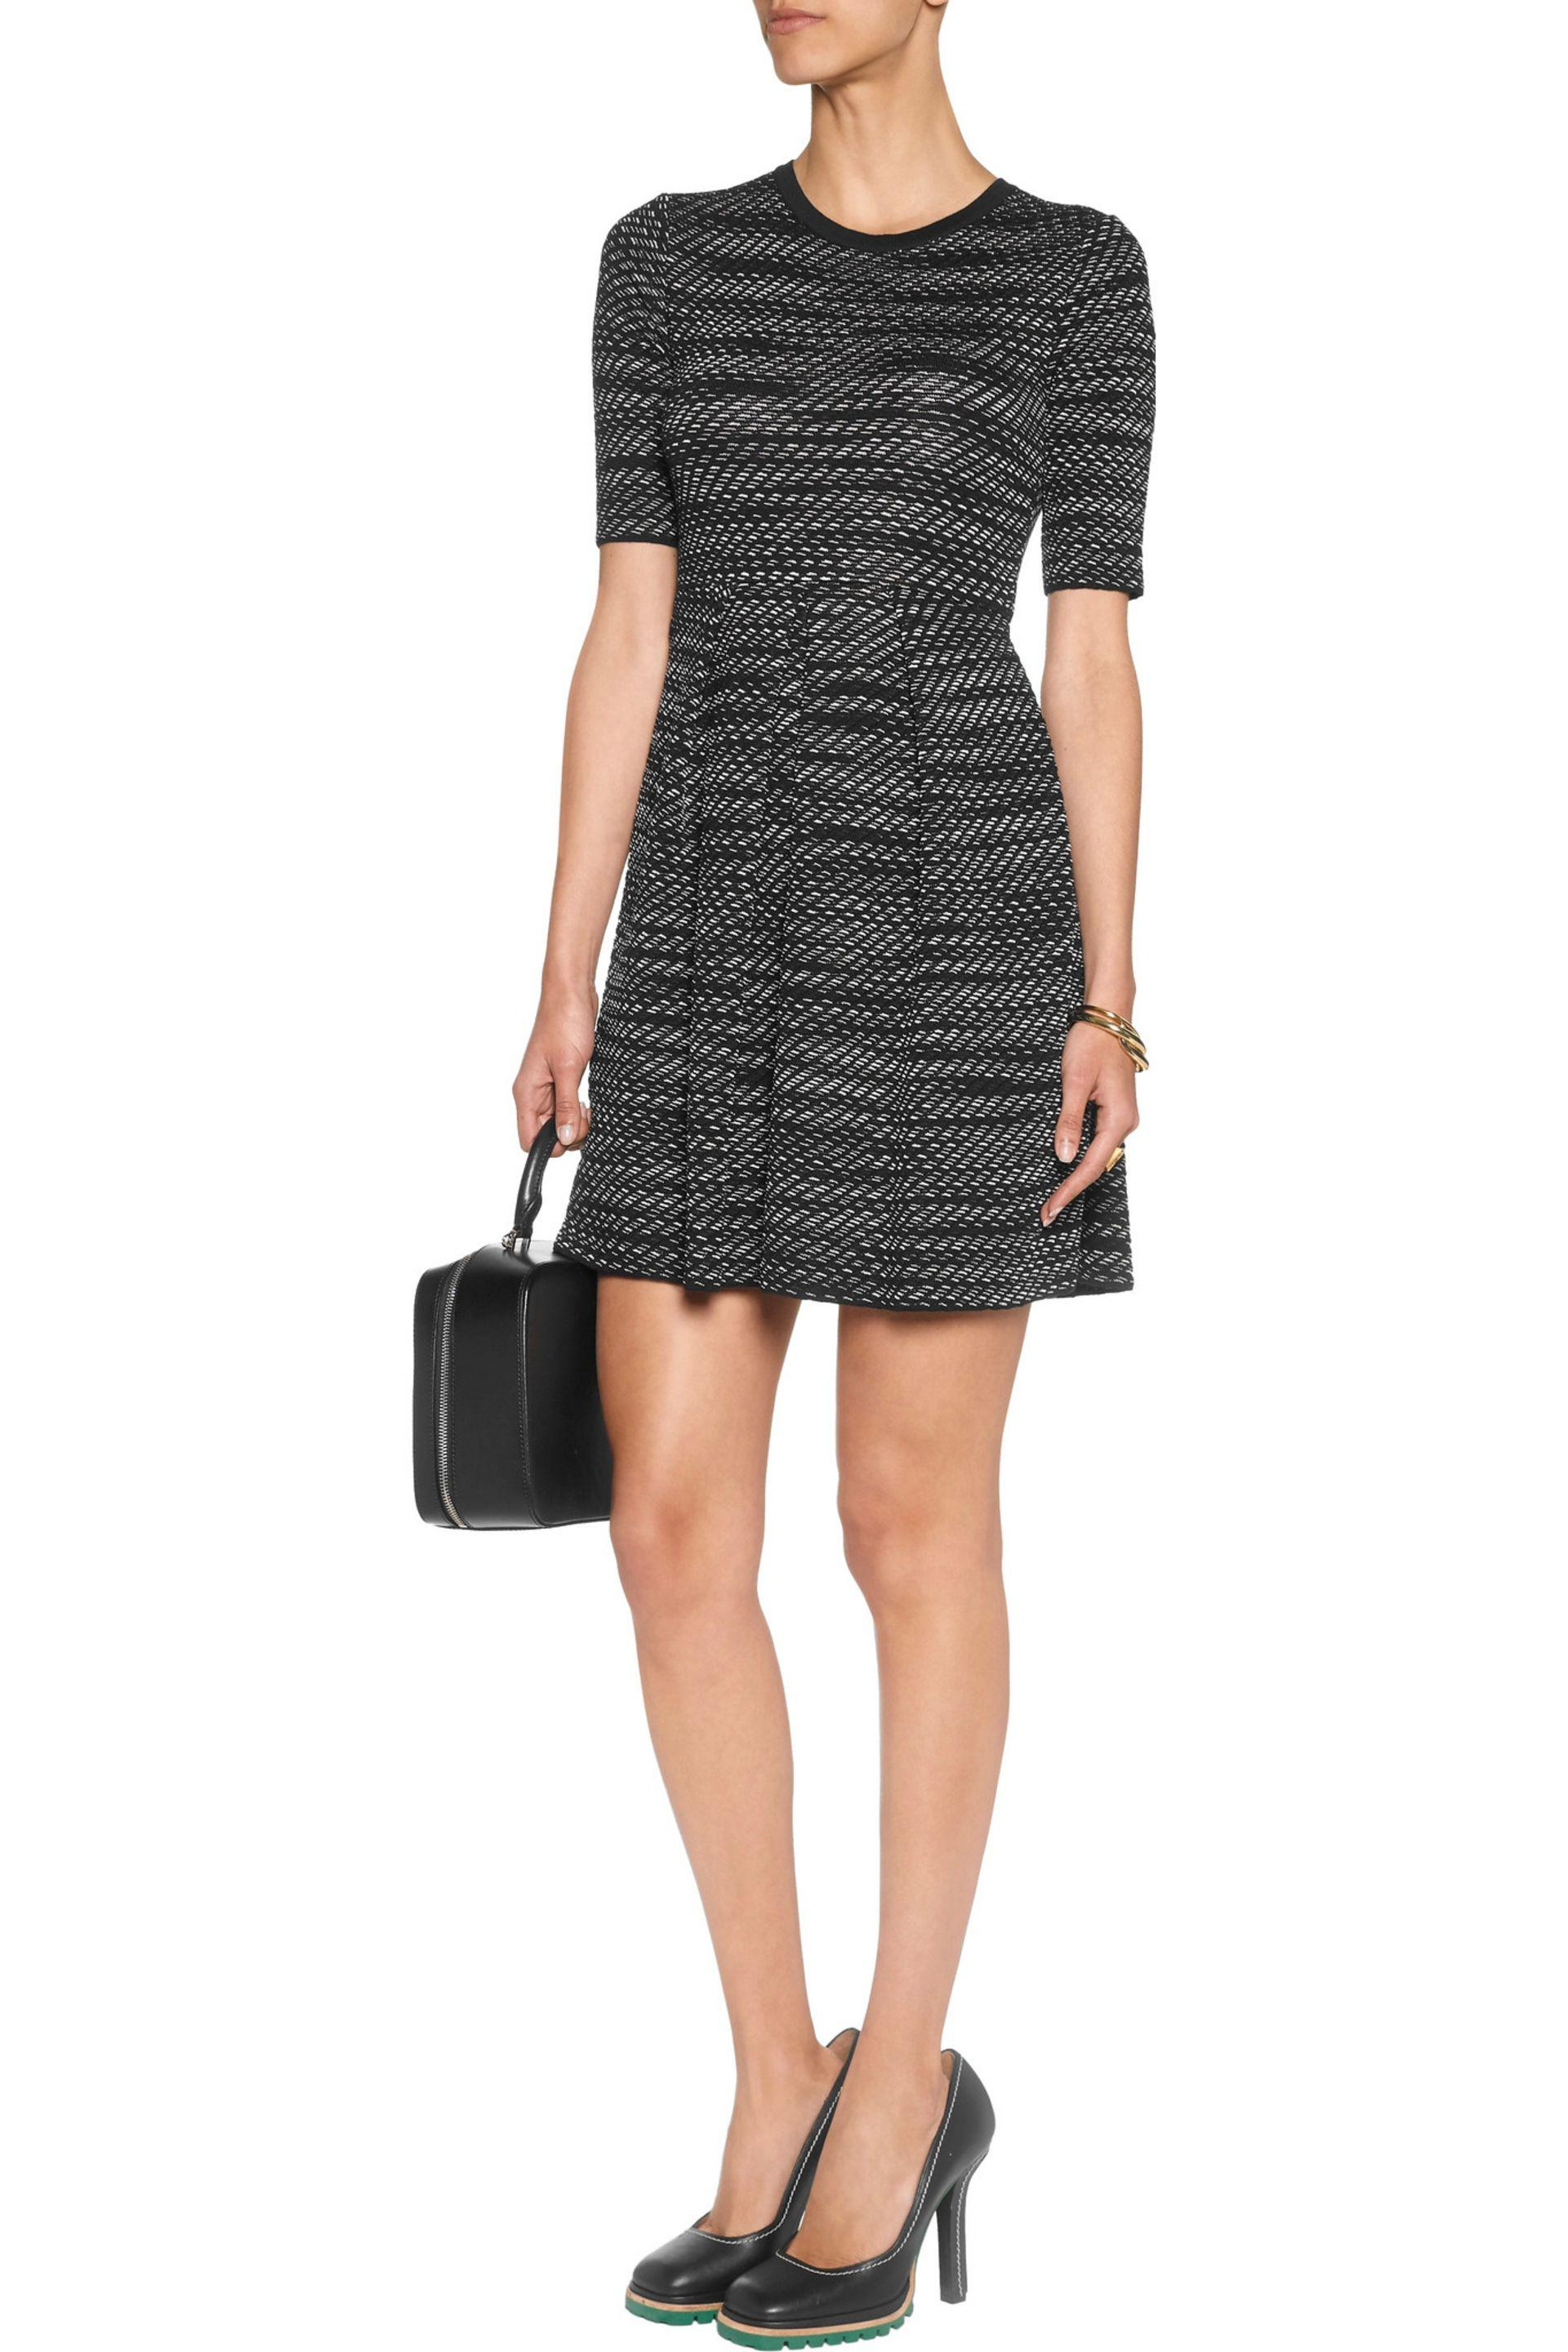 With Credit Card Online M Missoni Knit Mini Dress Authentic Cheap Online EpcA40y